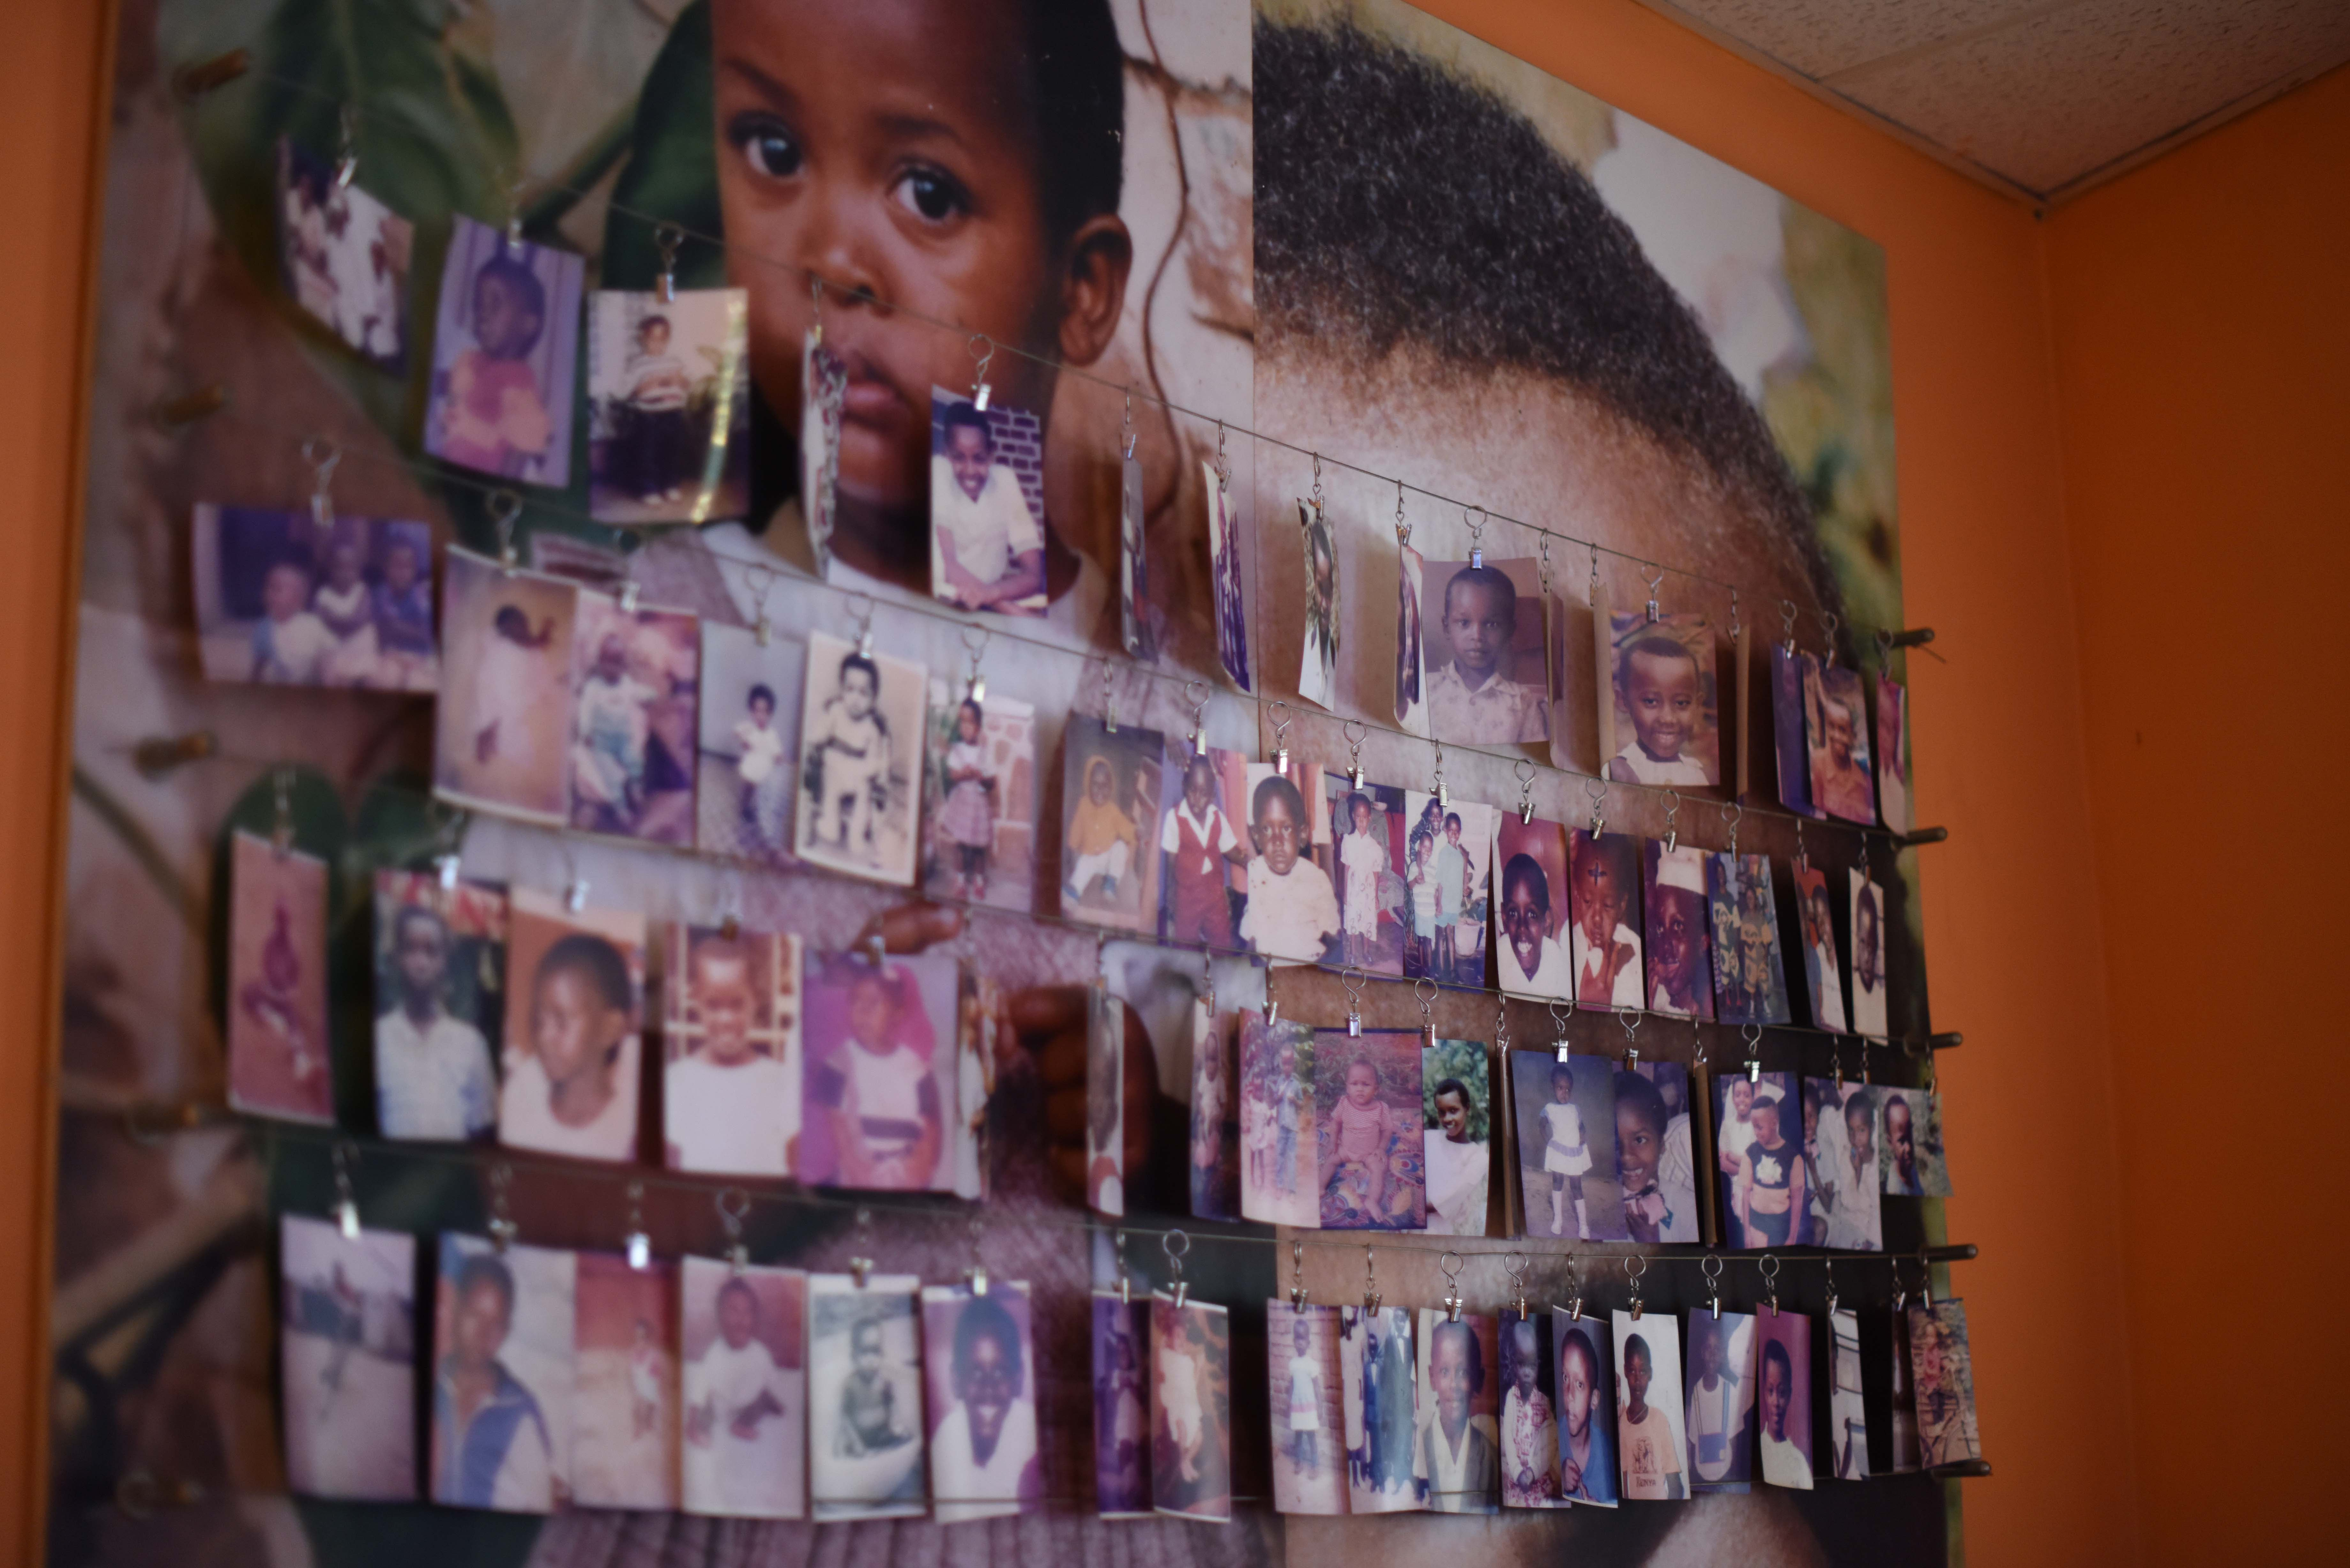 "Photos of children hang in the Genocide Memorial Museum in Kigali, Rwanda, Dec. 16, 2015. A portion of the museum named ""futures lost"" is dedicated to children killed in the 1994 genocide of Tutsi tribe members. Infants and young children who have been identified are highlighted in this portion of the exhibit. It is still unknown how many children were lost in the genocide. (U.S. Air Force photo by Staff Sgt. Victoria Sneed)"